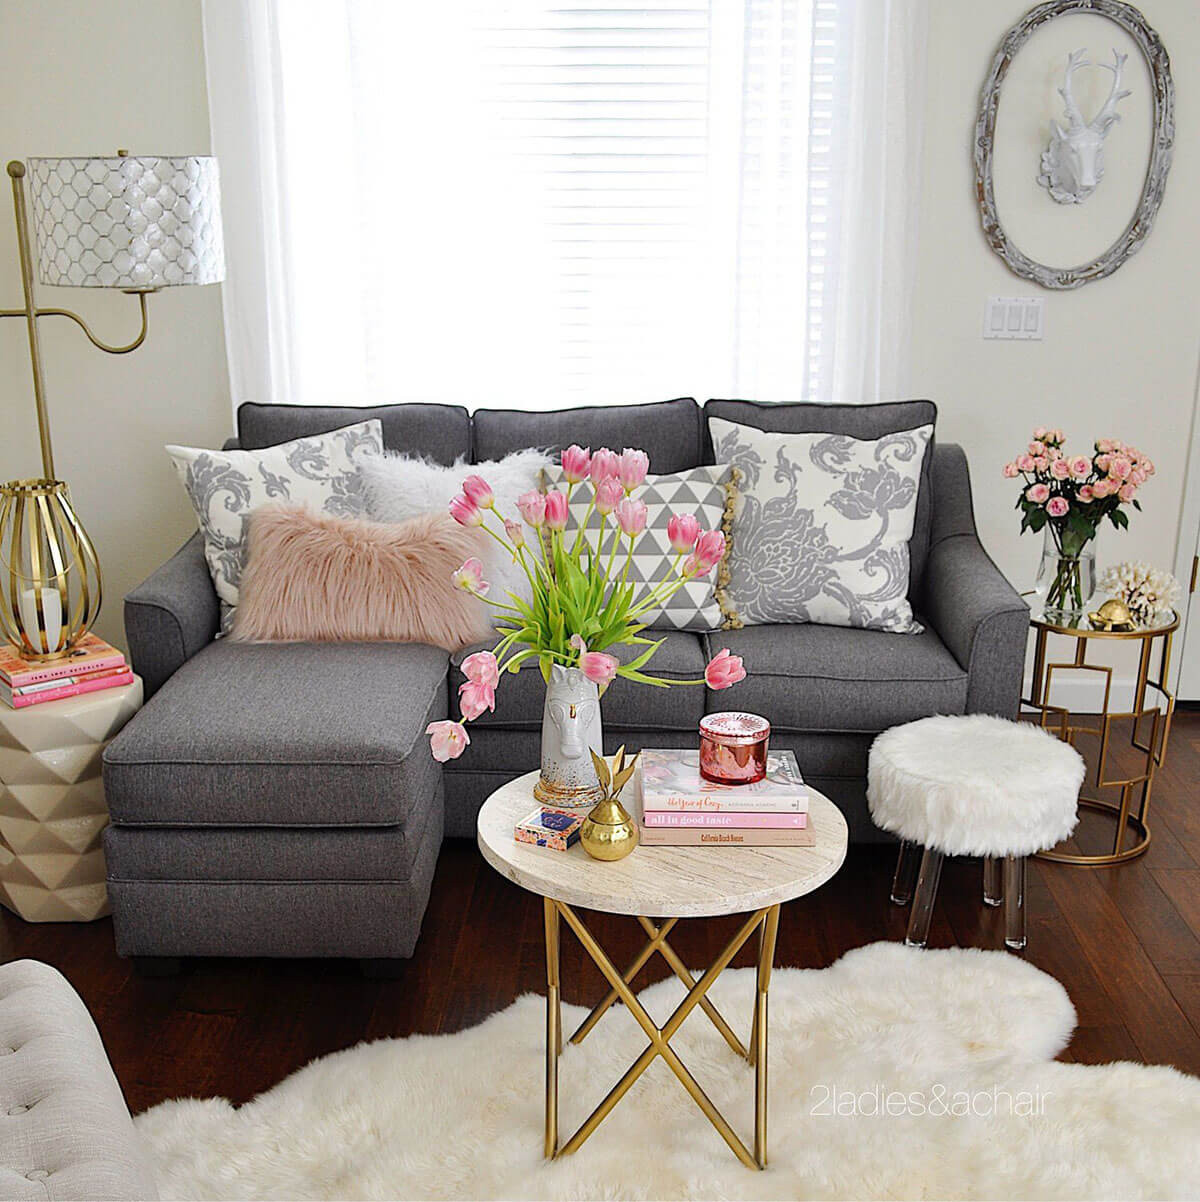 Best ideas about Small Apartment Living Room . Save or Pin 25 Best Small Living Room Decor and Design Ideas for 2019 Now.